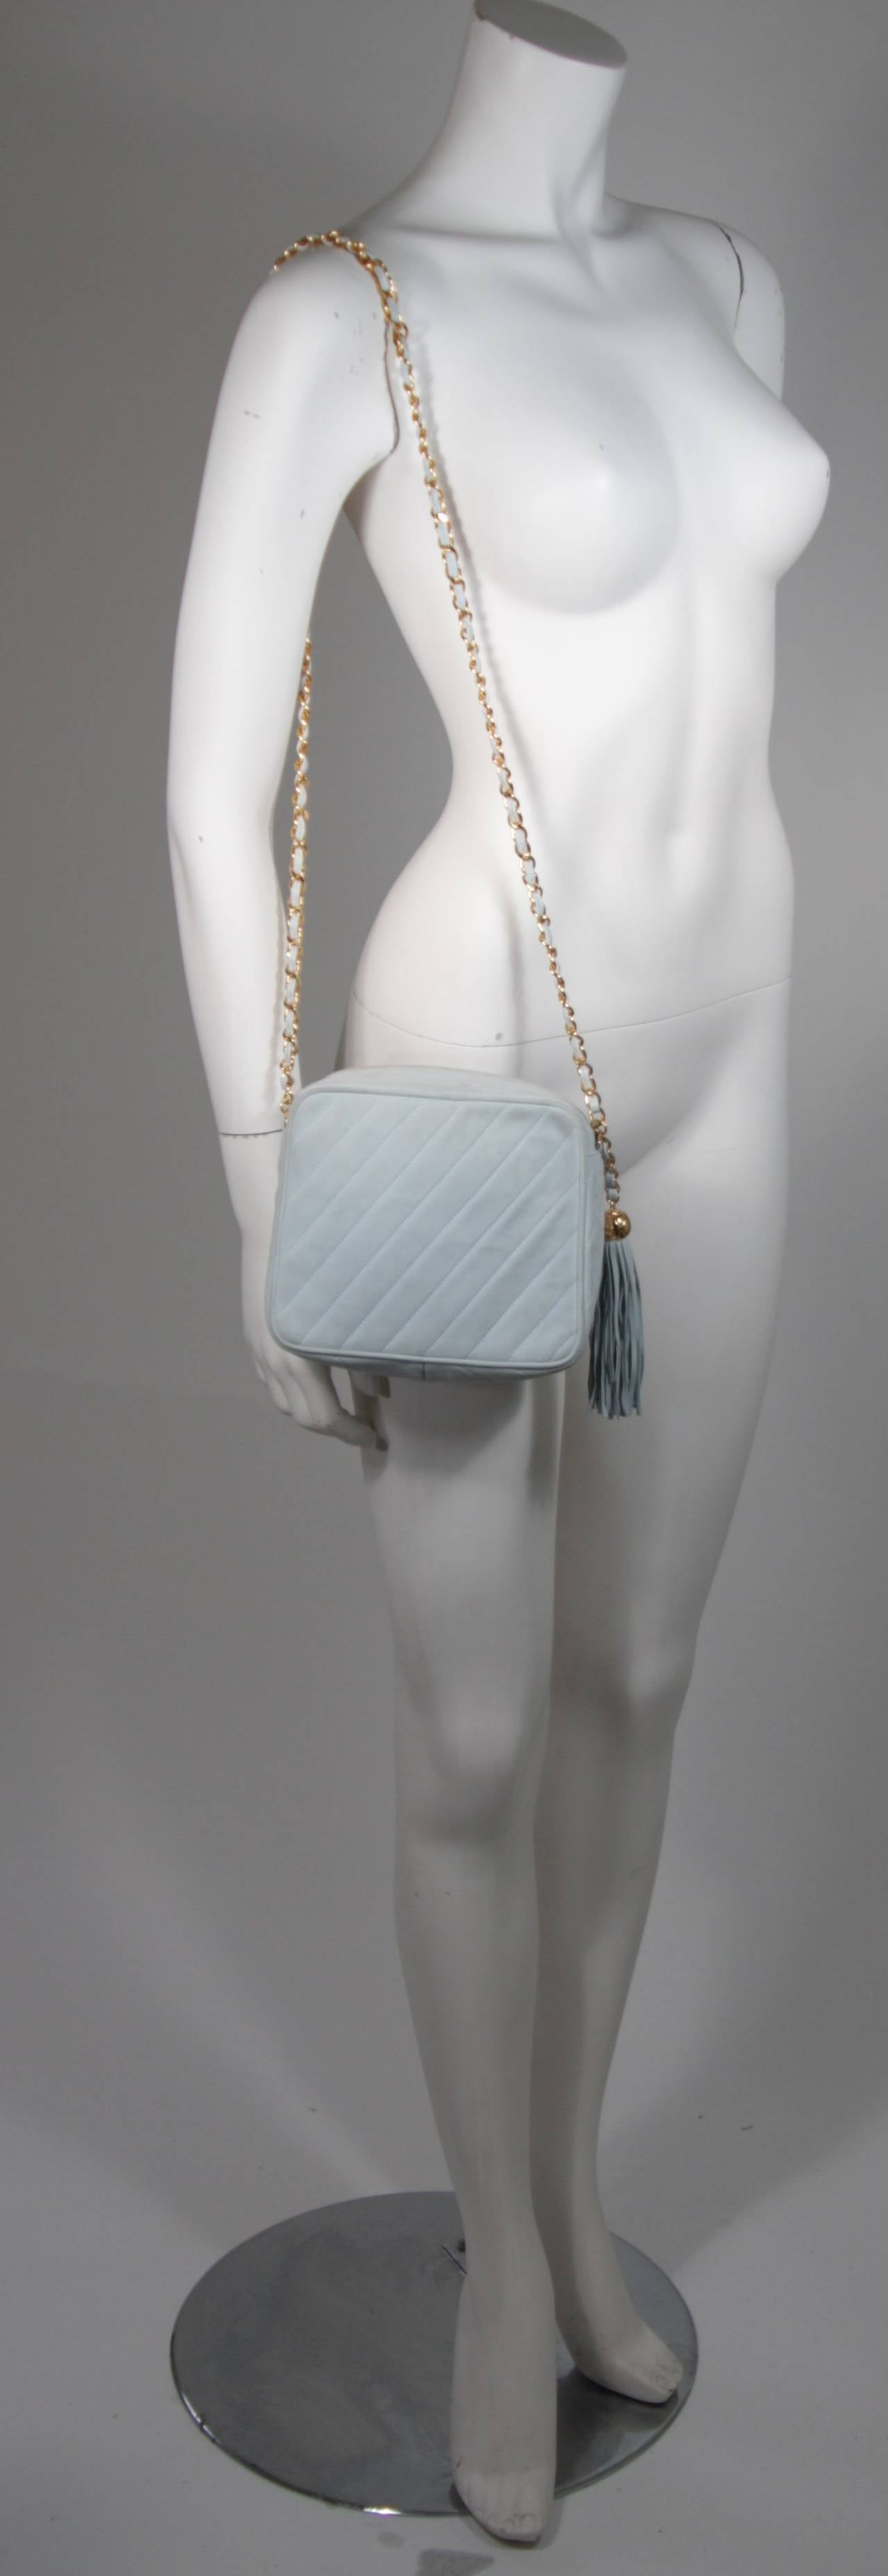 Chanel Light Blue Quilted Suede Purse with Gold Hardware and Tassel 3